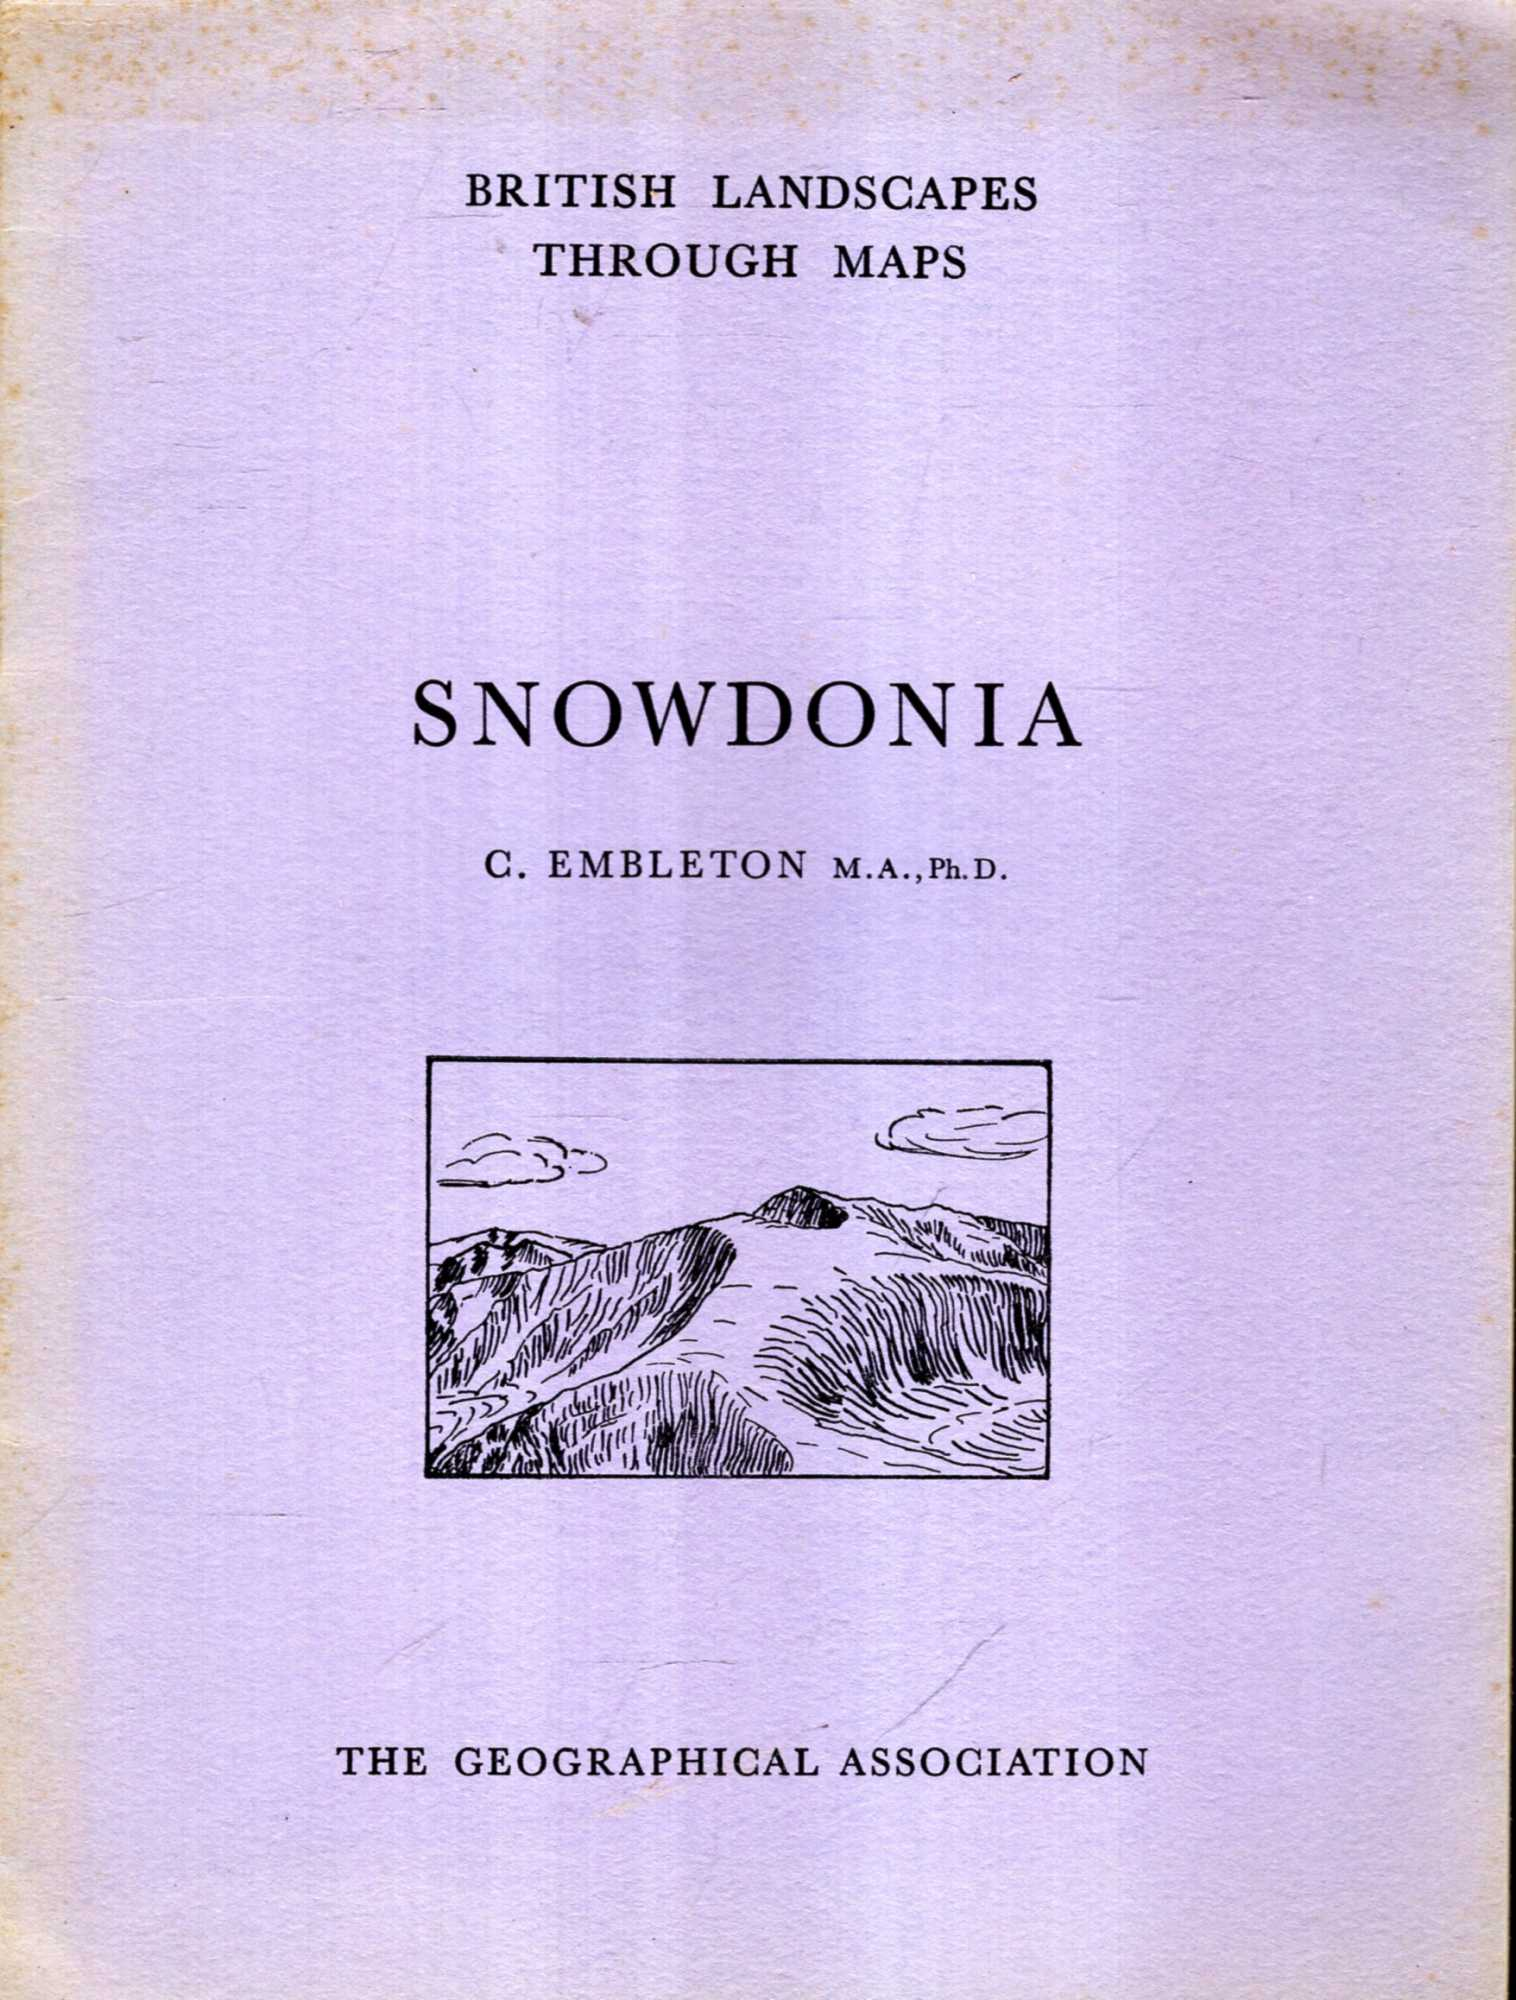 Image for British Landscapes Through Maps 5 : Snowdonia, a description of the O.S. One-inch Sheet 107 : Snowdon